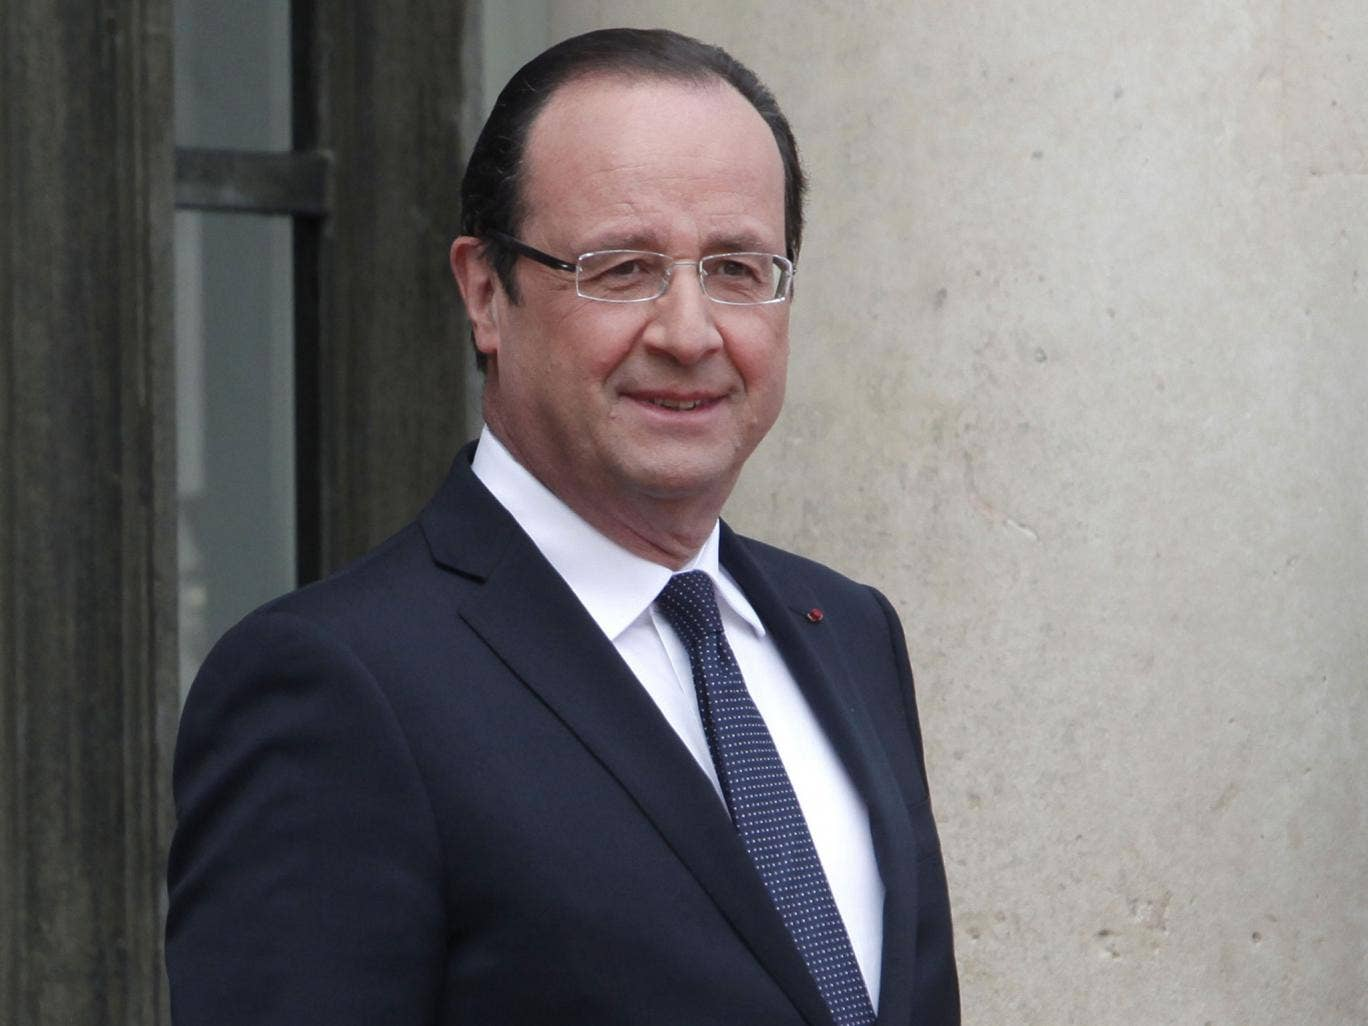 President Hollande's staff in the Elysee Palace are also graduates  of 'elite' schools such as the École Nationale d'Administration